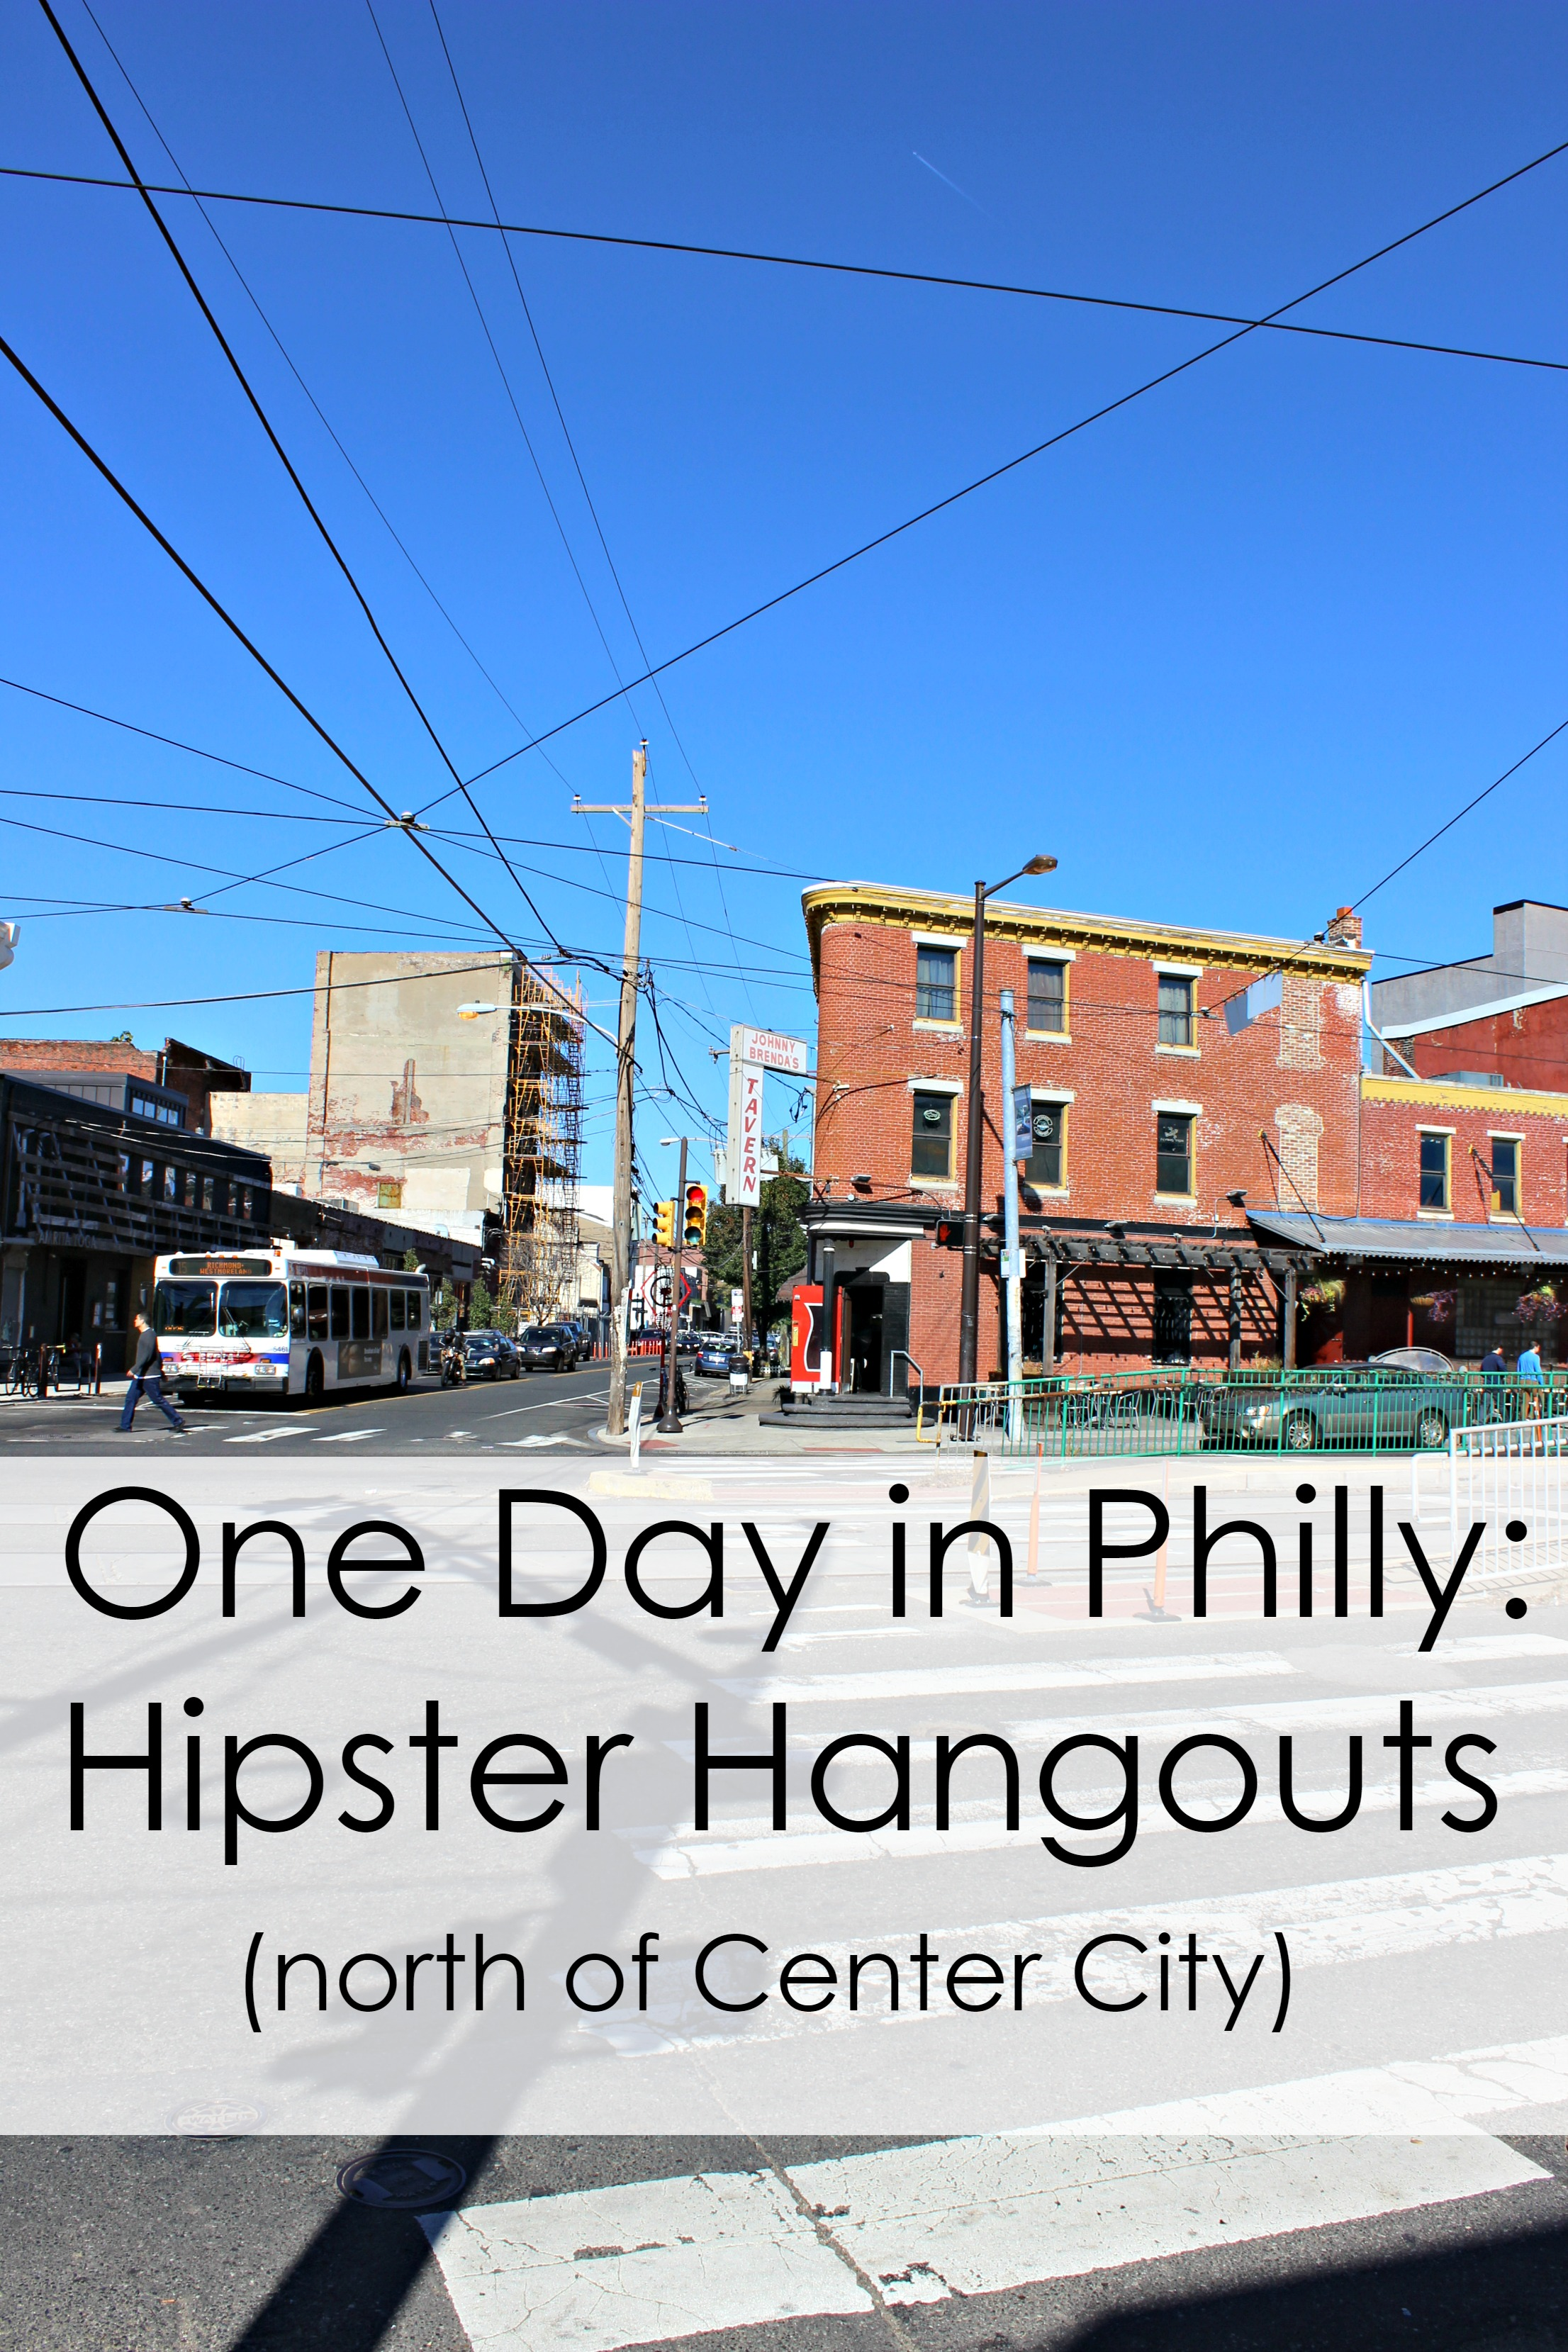 One Day in Philly: Hipster Hangouts // a day trip guide to all the hipster hangouts in Philadelphia